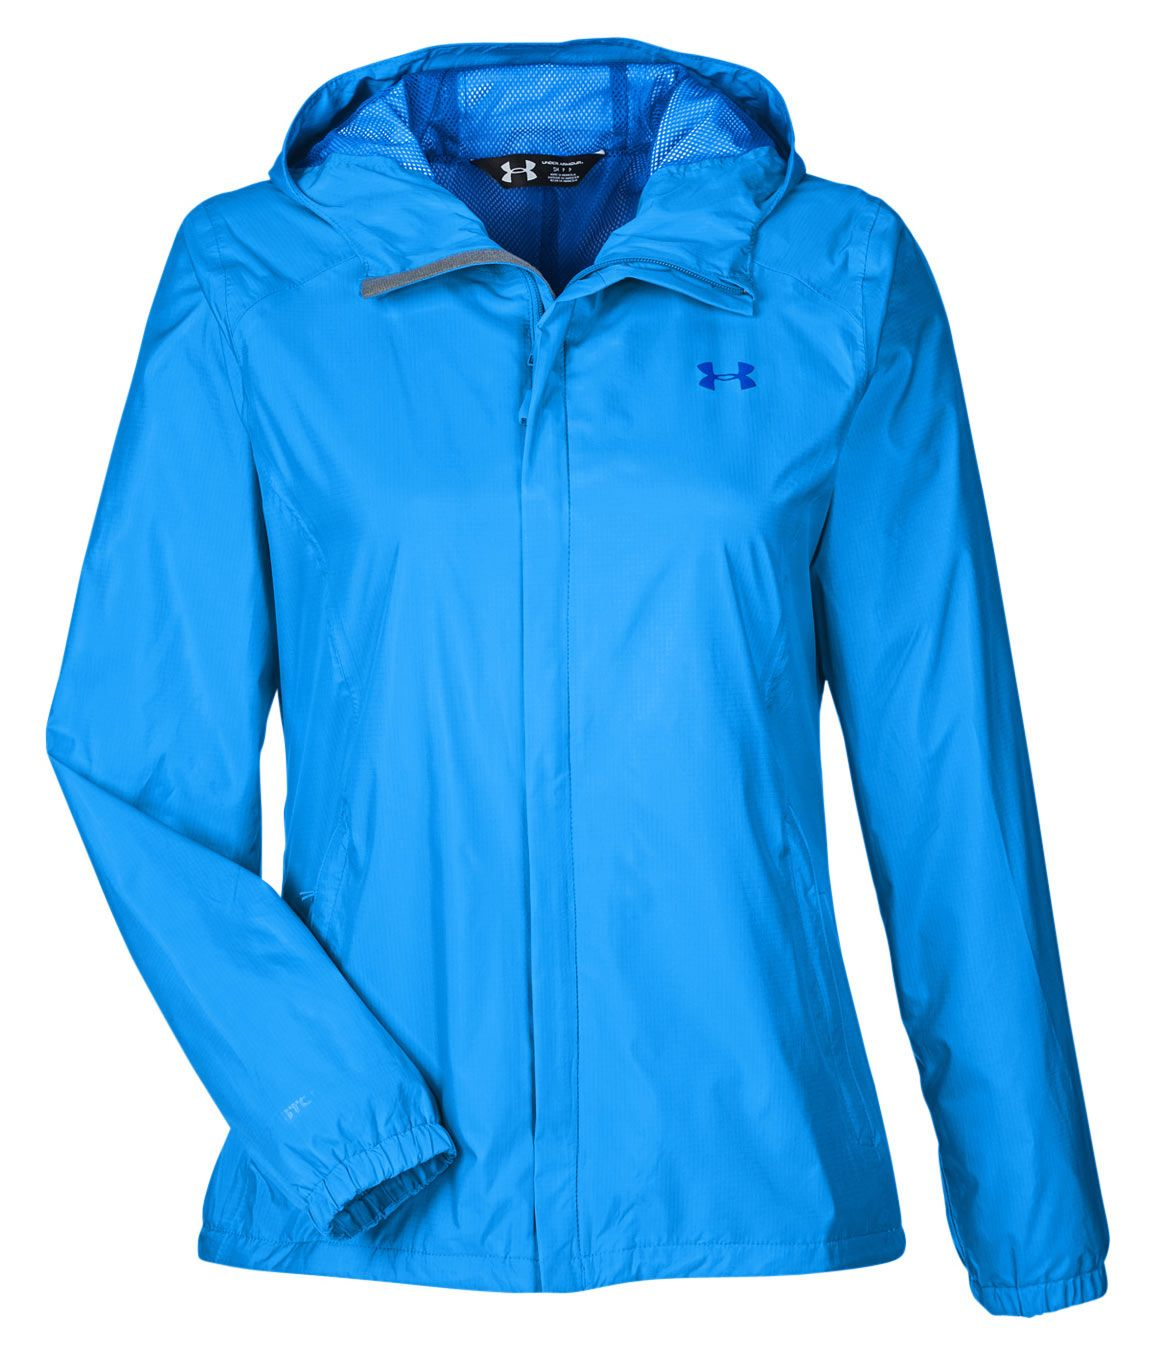 c946579fd Customize these Under Armour Ladies UA Bora Rain Jackets with your logo for  the holidays!